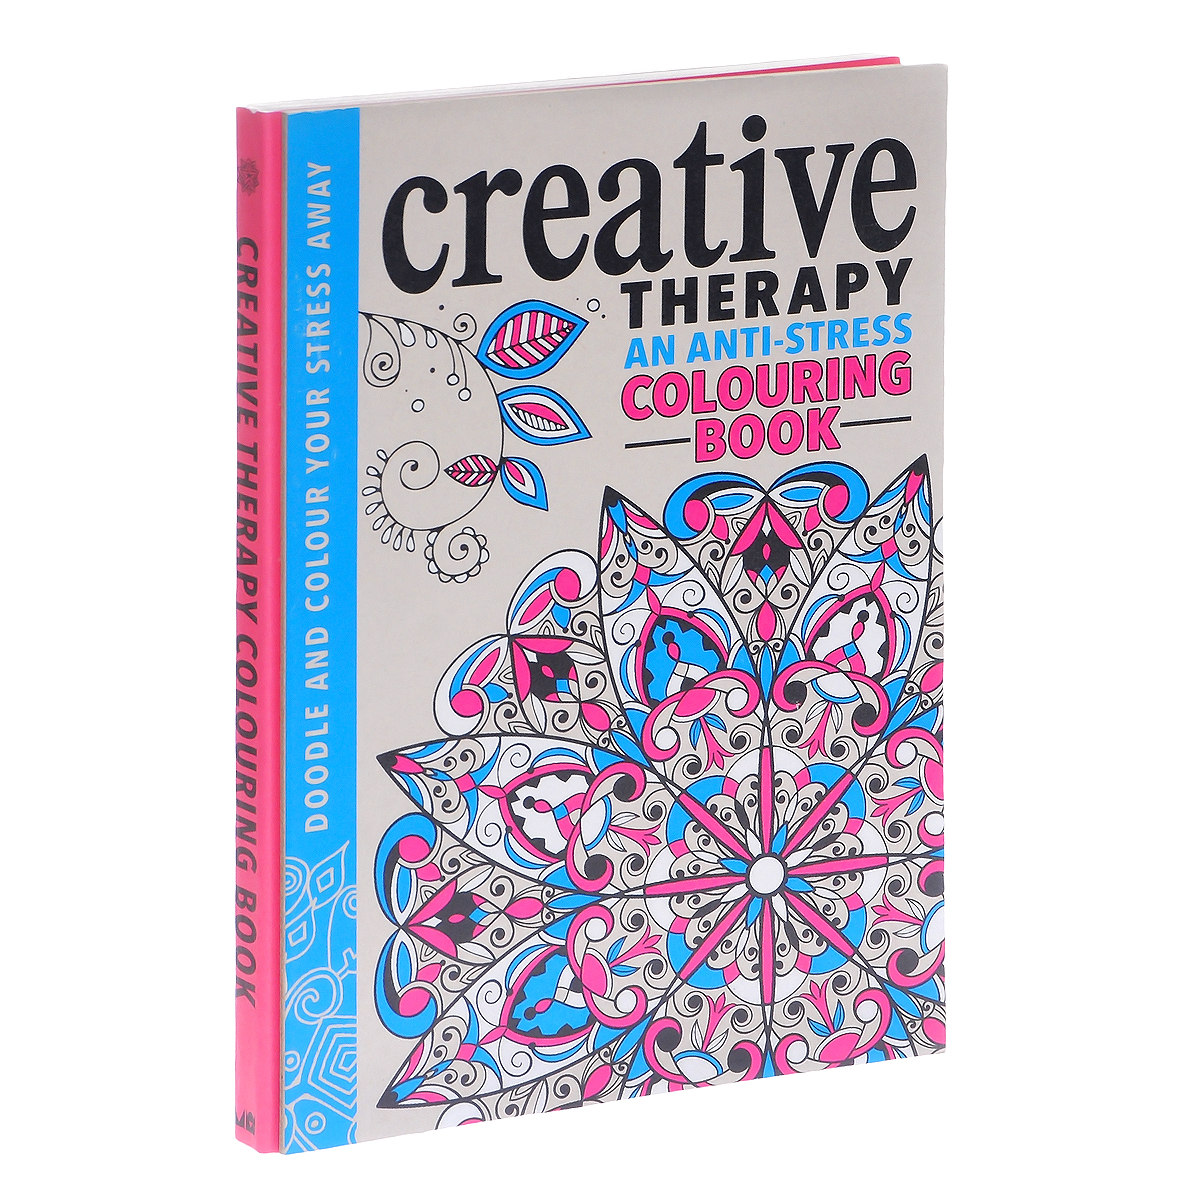 The Creative Therapy Colouring Book pocket doodling and colouring book blue book